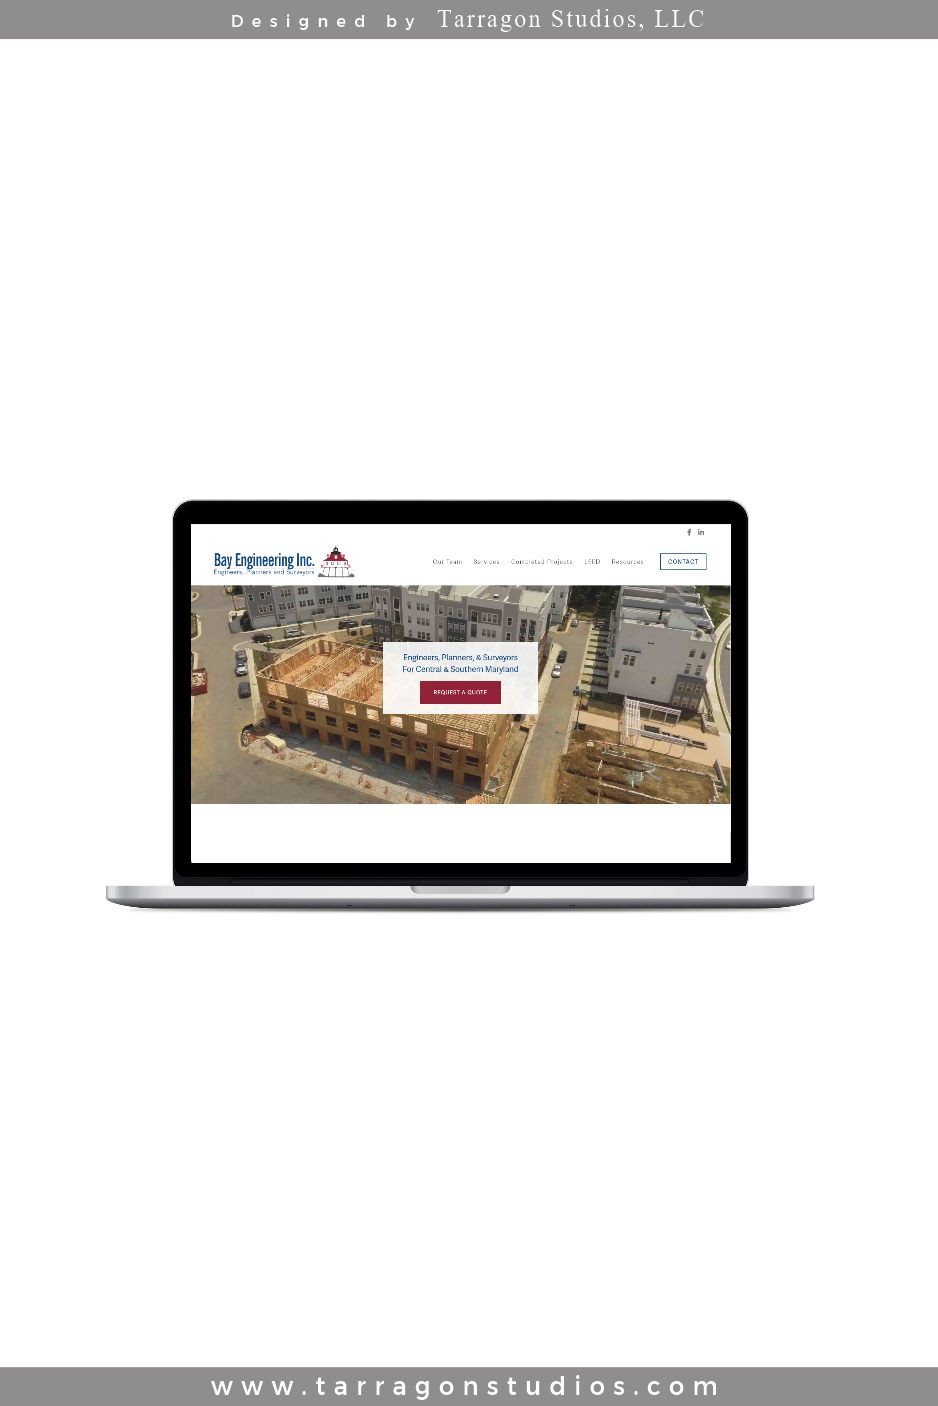 Bay Engineering, Inc Website Design by Tarragon Studios. Keep Reading to see how we pulled this website together! #website #design #construction #masculine